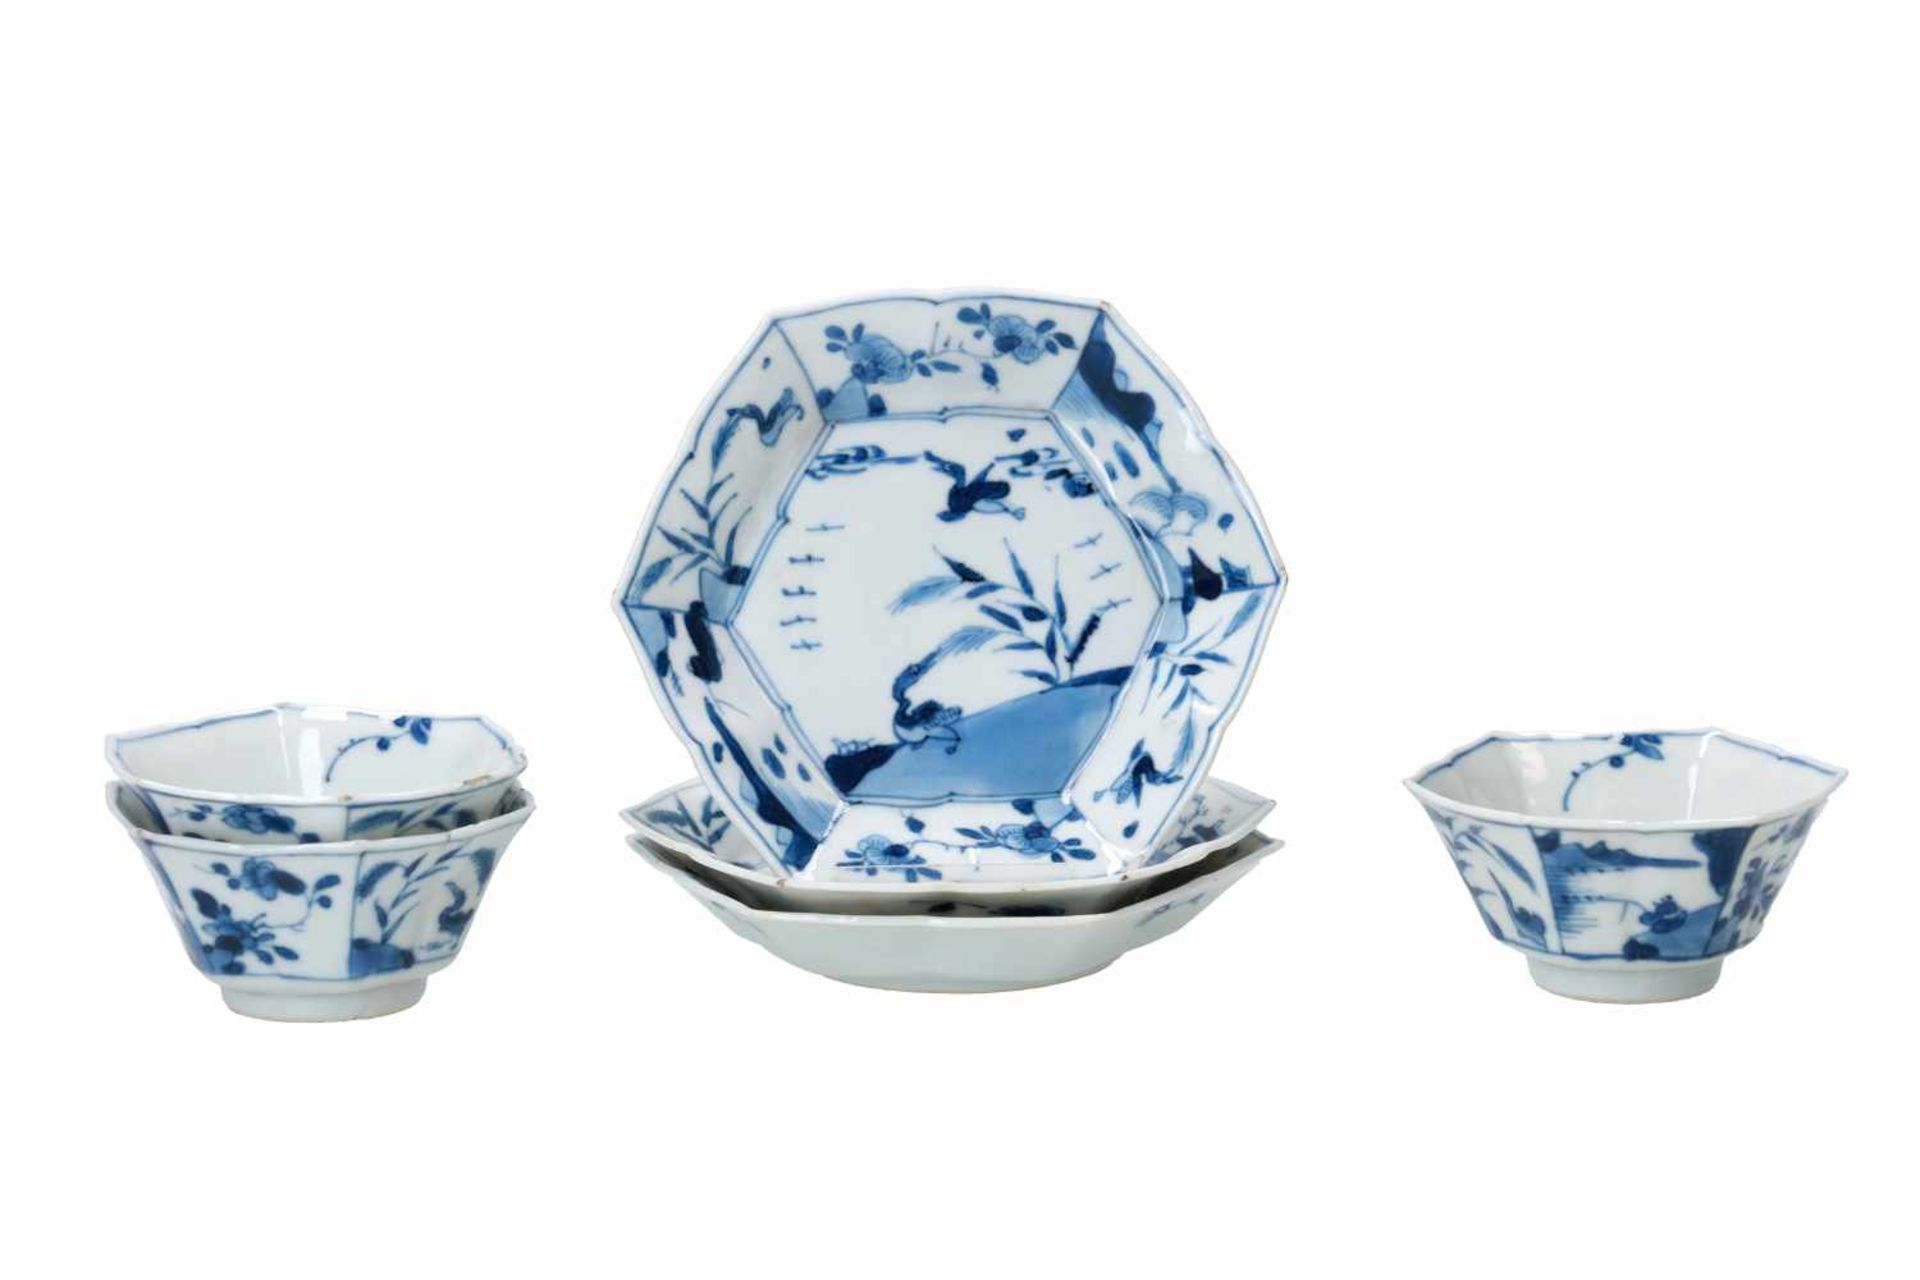 A set of three hexagonal blue and white porcelain cups with saucers, decorated with ducks, flowers